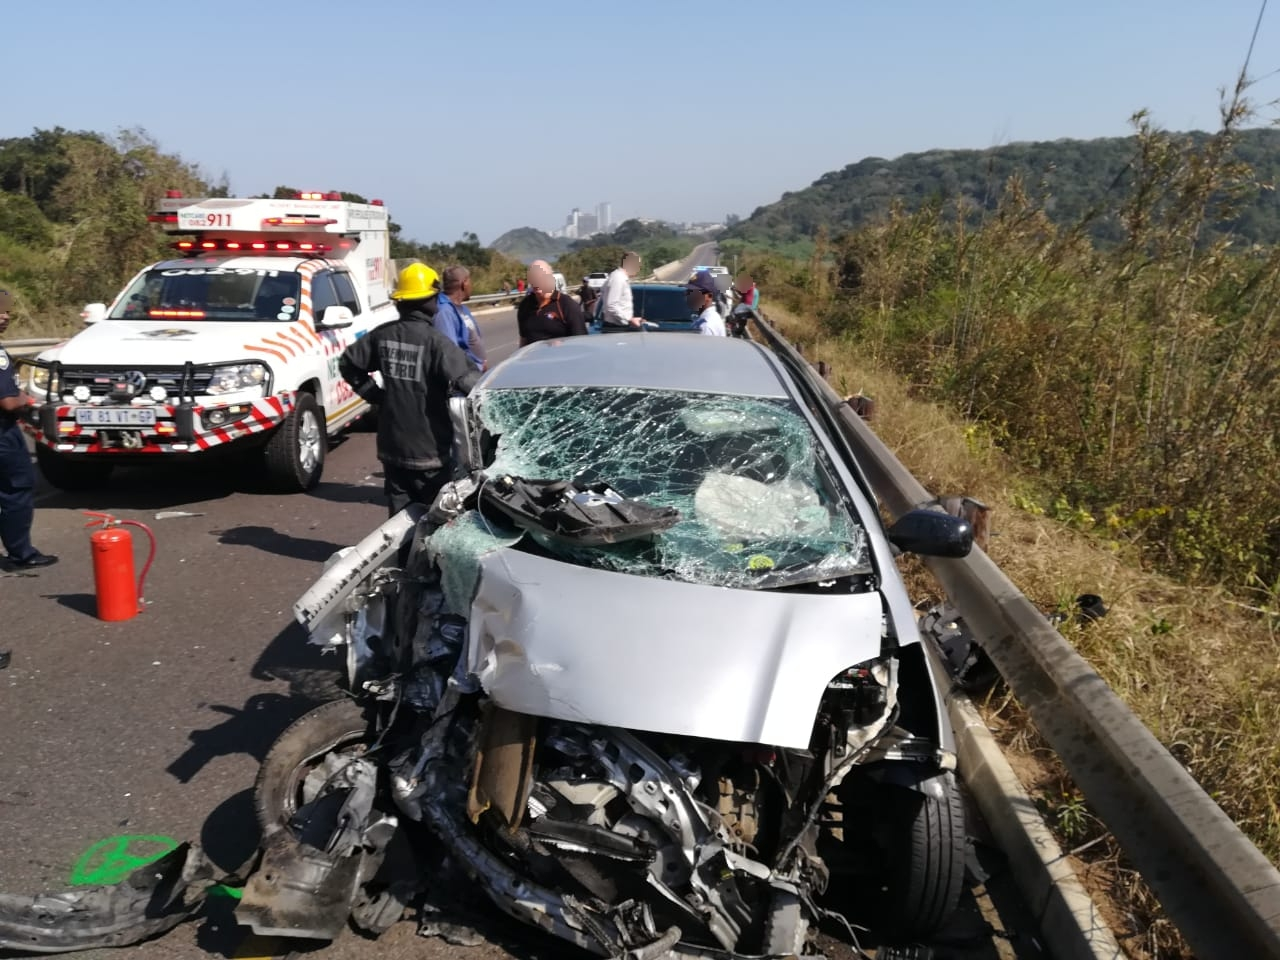 Limpopo Traffic Officers jailed for R150 bribe on